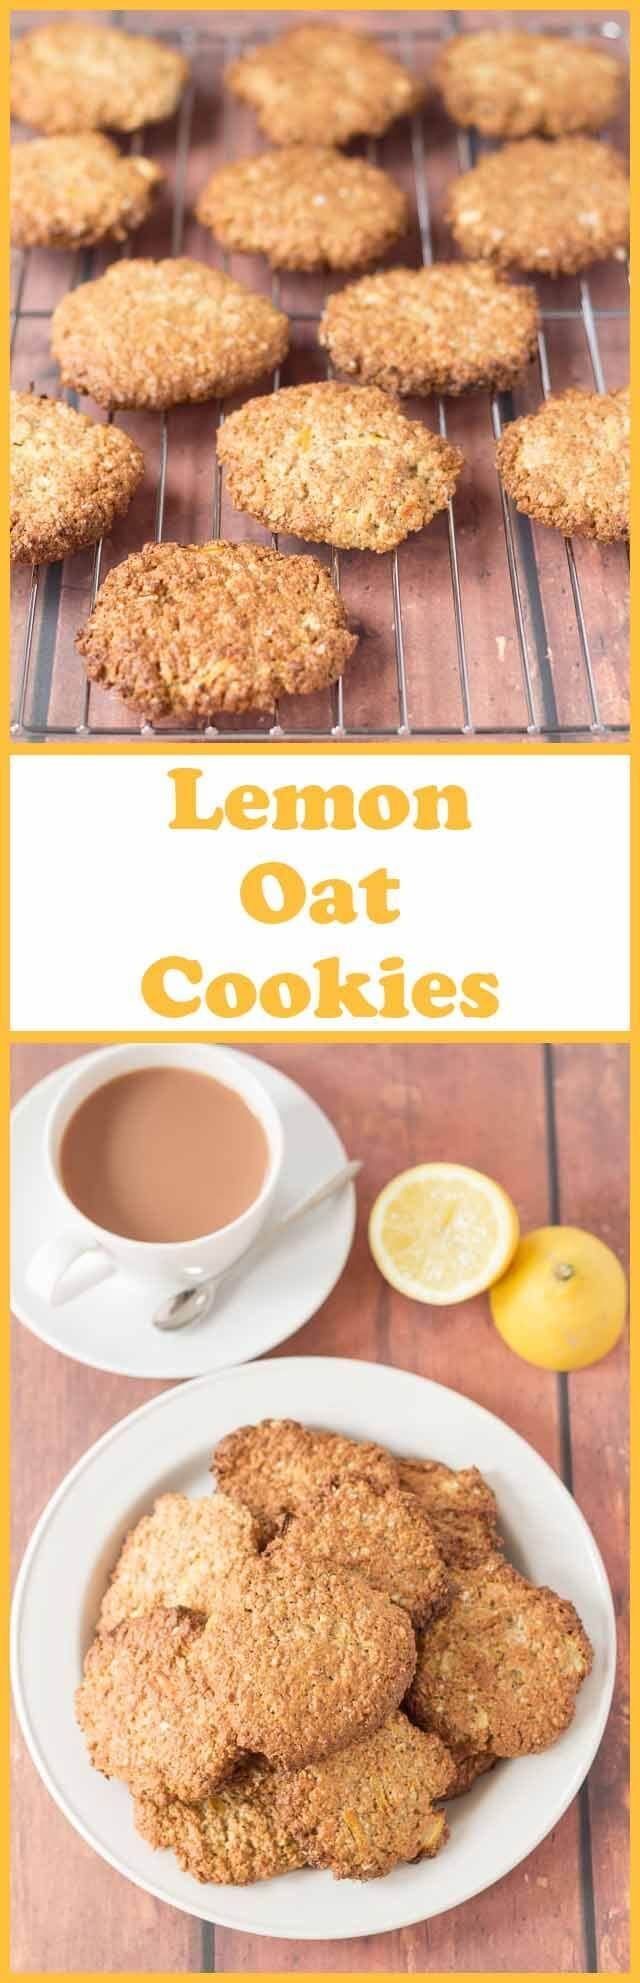 Lemon oat cookies are a delicious and simple bake with an amazing fresh lemon taste. Made with oats, wholemeal flour, coconut oil and lemon you'll love this healthier cookie recipe! via @neilhealthymeal